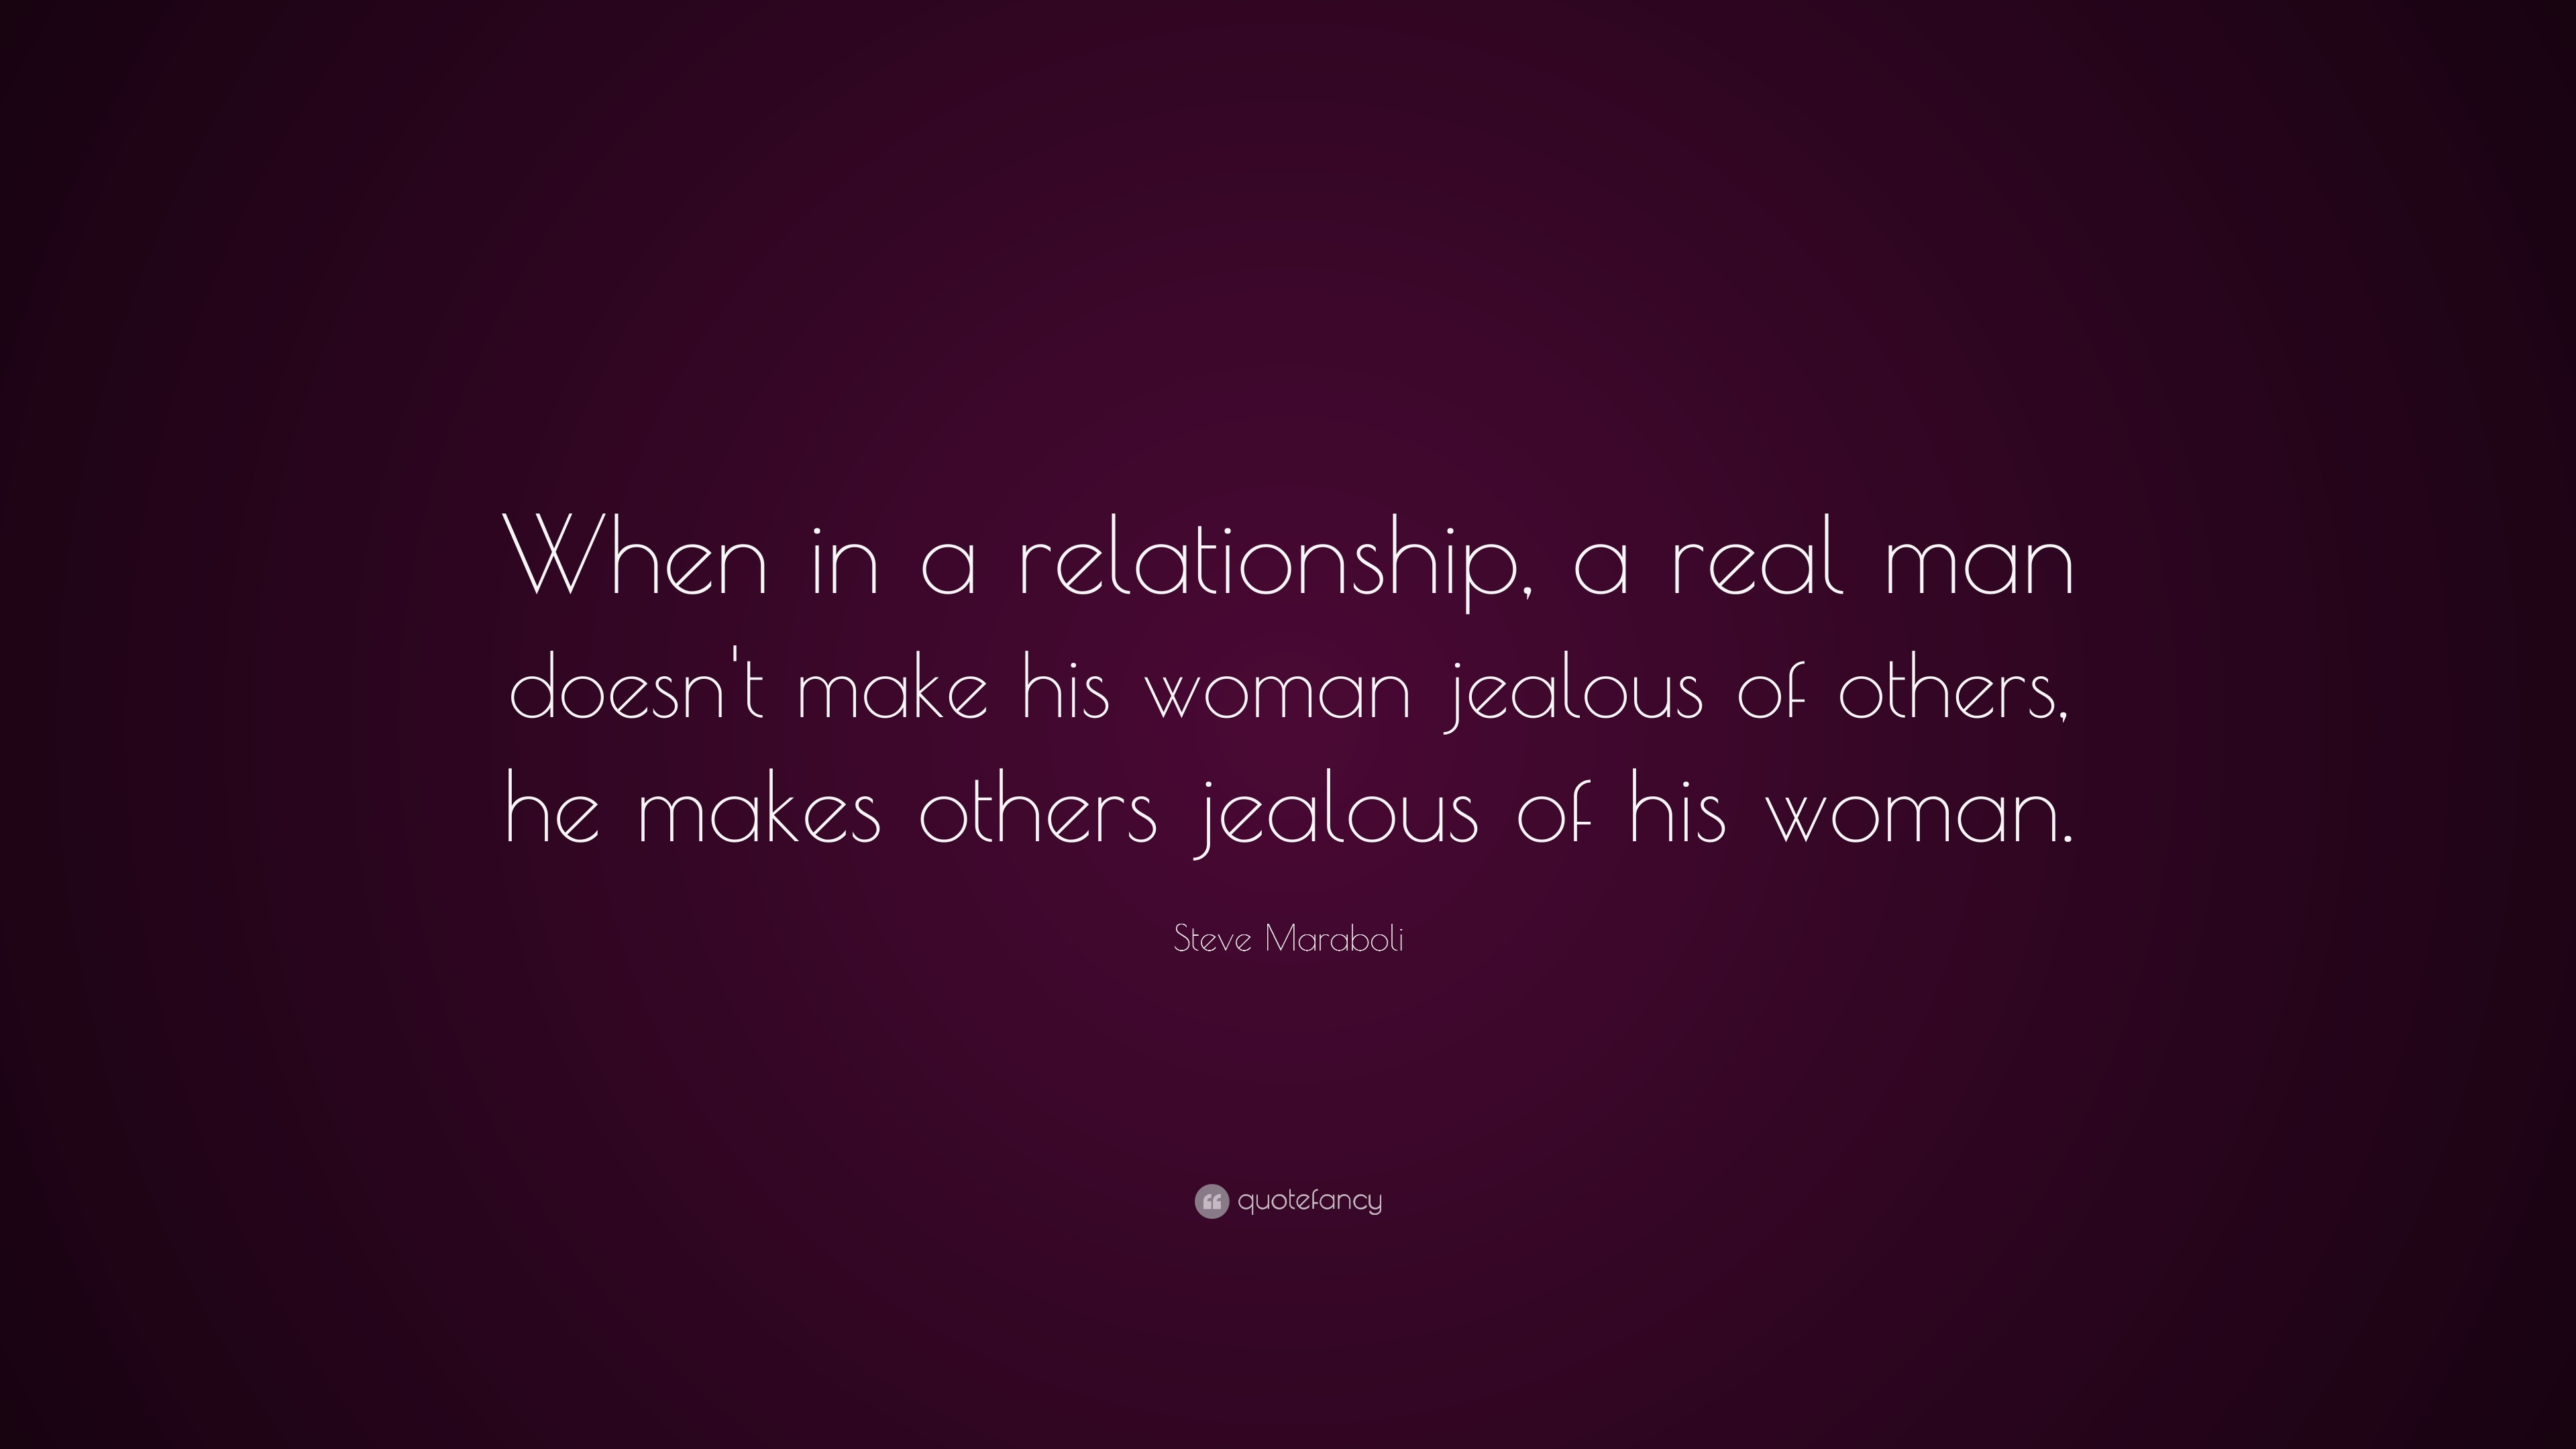 Relationship Quotes Wallpapers Quotefancy - 18 wisest quotes ever shared complete strangers